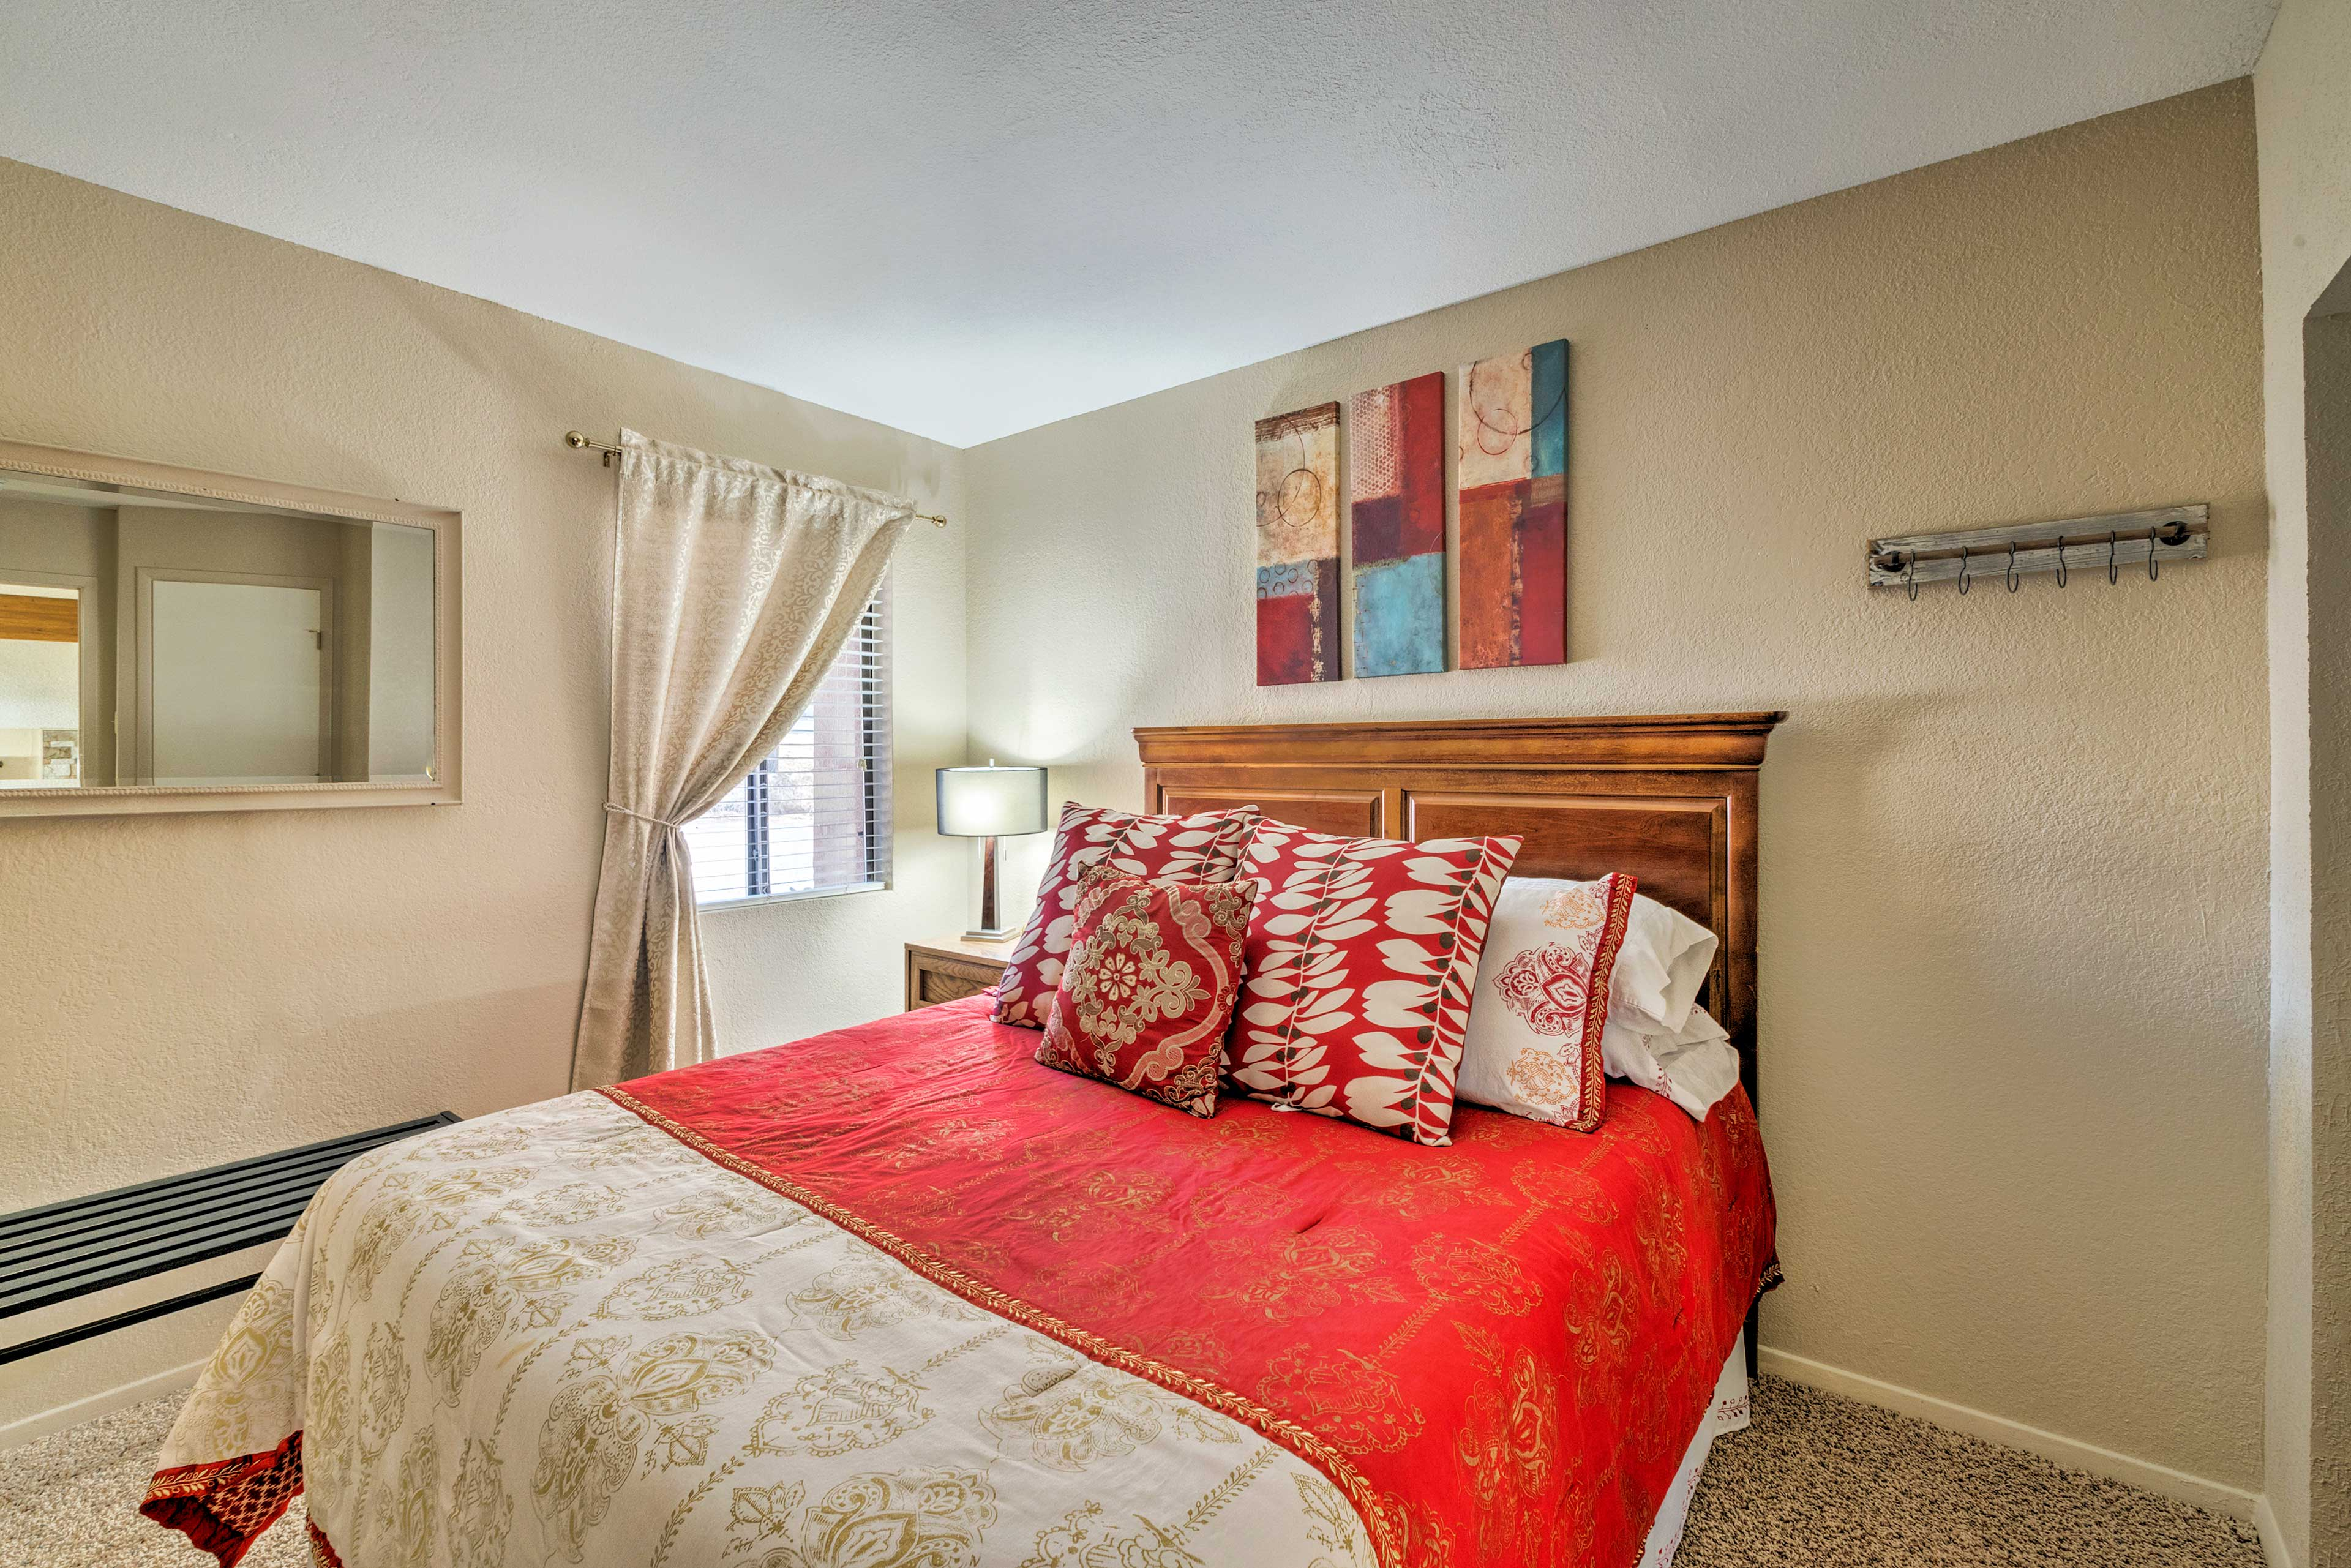 In the second bedroom you'll find a queen-sized bed.